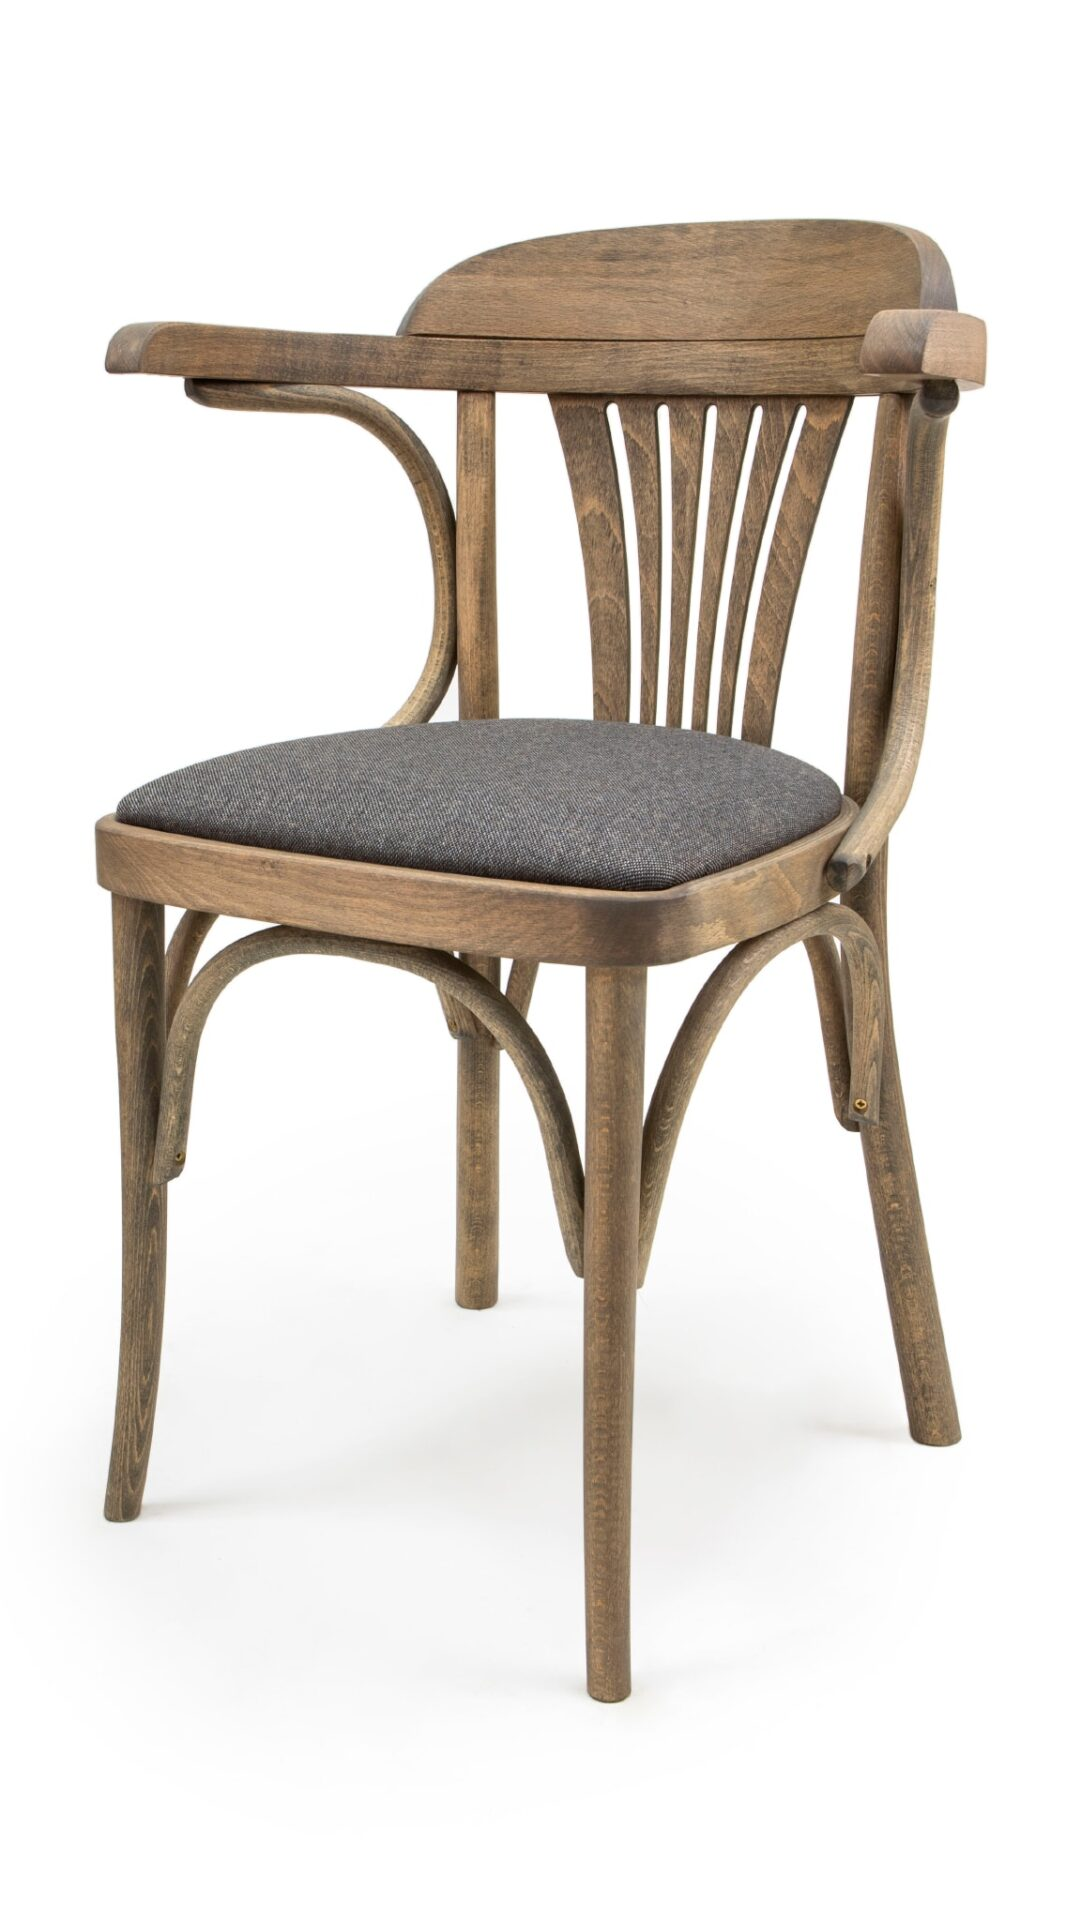 Solid Wood Chair made of Beech - 1337A, B